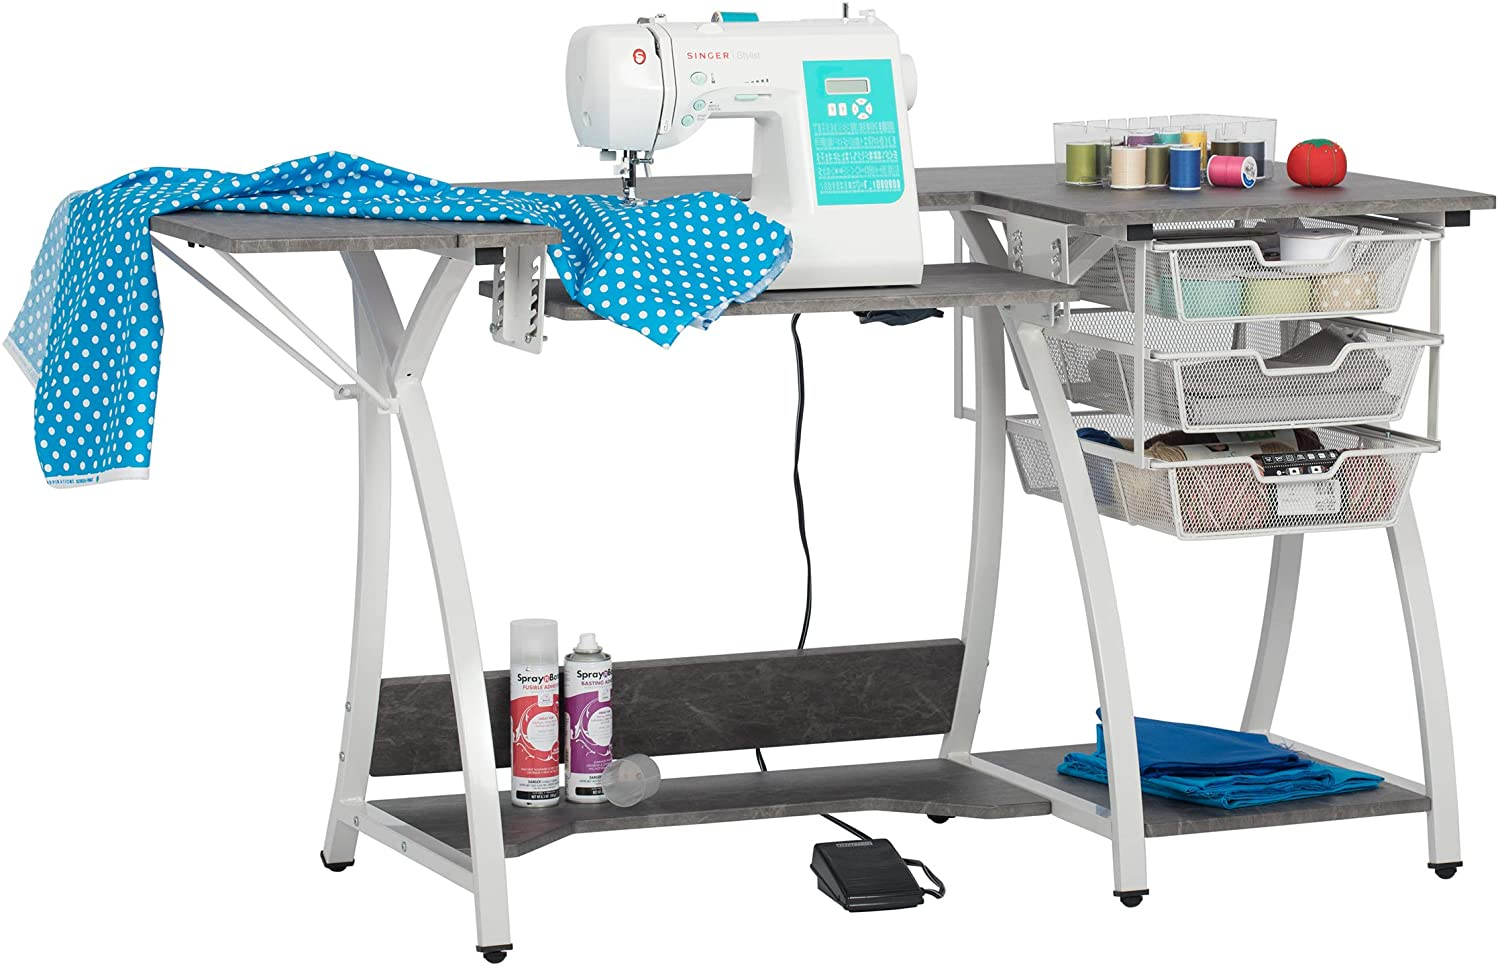 Sew Ready Pro Stitch Sewing Machine Table with Wire Mesh Drawers, Desk for Hobby, Craft Table and Computer Desk, Home Office in White /Cement Gray , 56.75